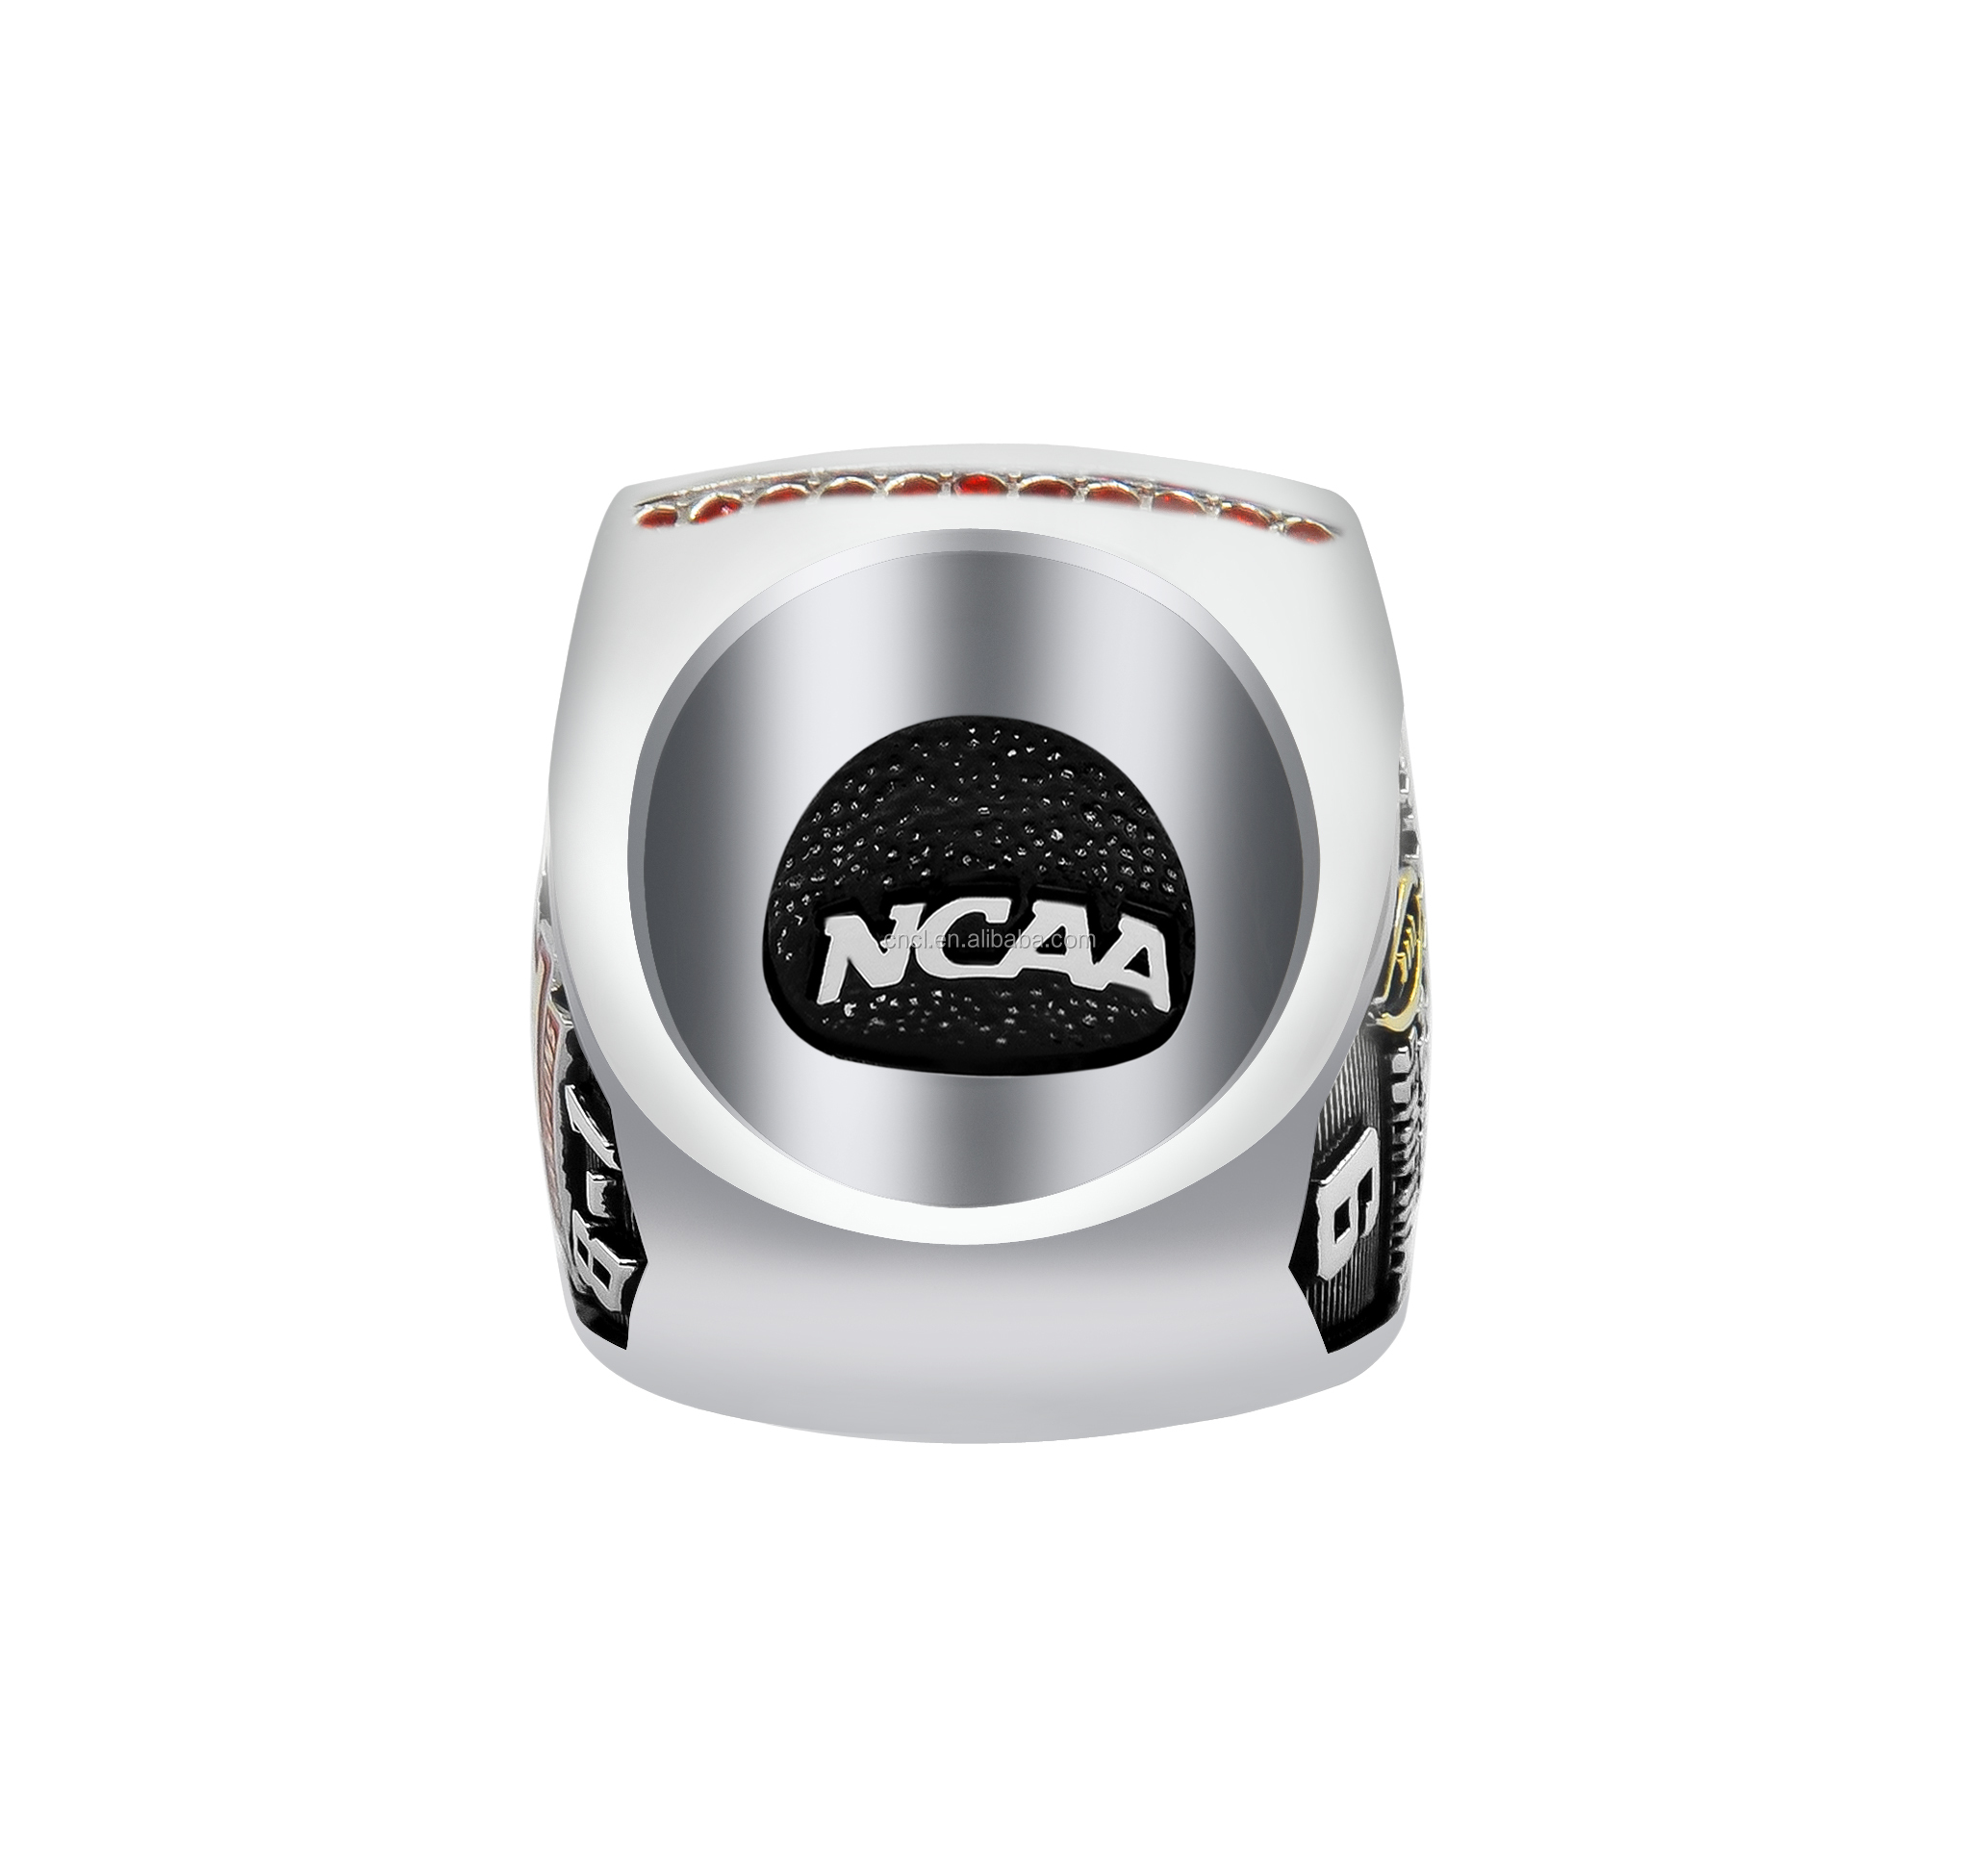 Custom stainless steel fashion football baseball championship college graduation signet rings for men